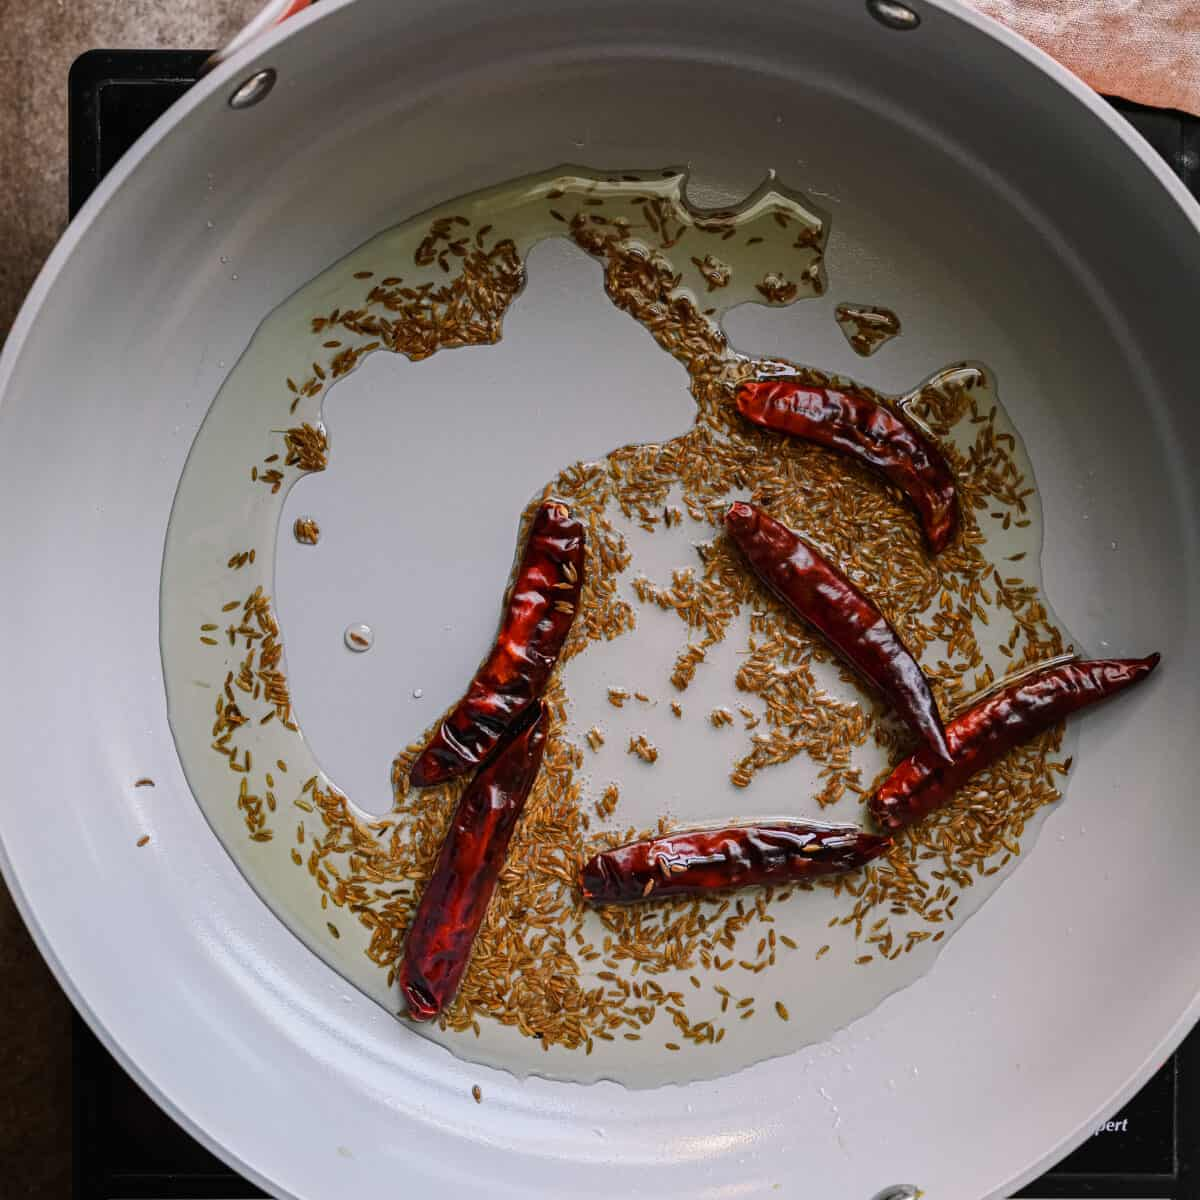 cumin seeds and dried red chili peppers toasting in oil